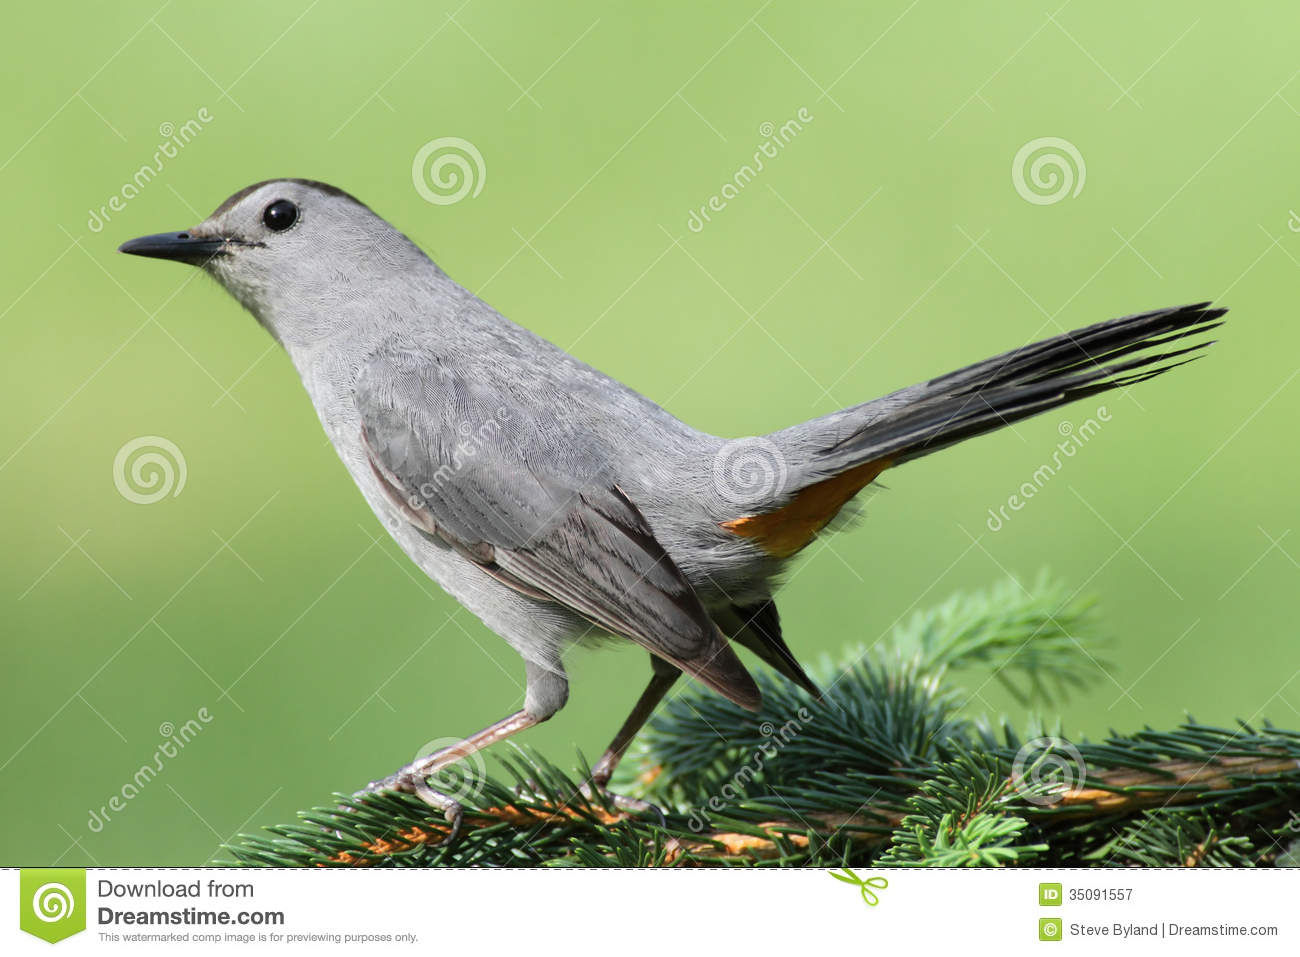 Grey Catbird clipart #6, Download drawings